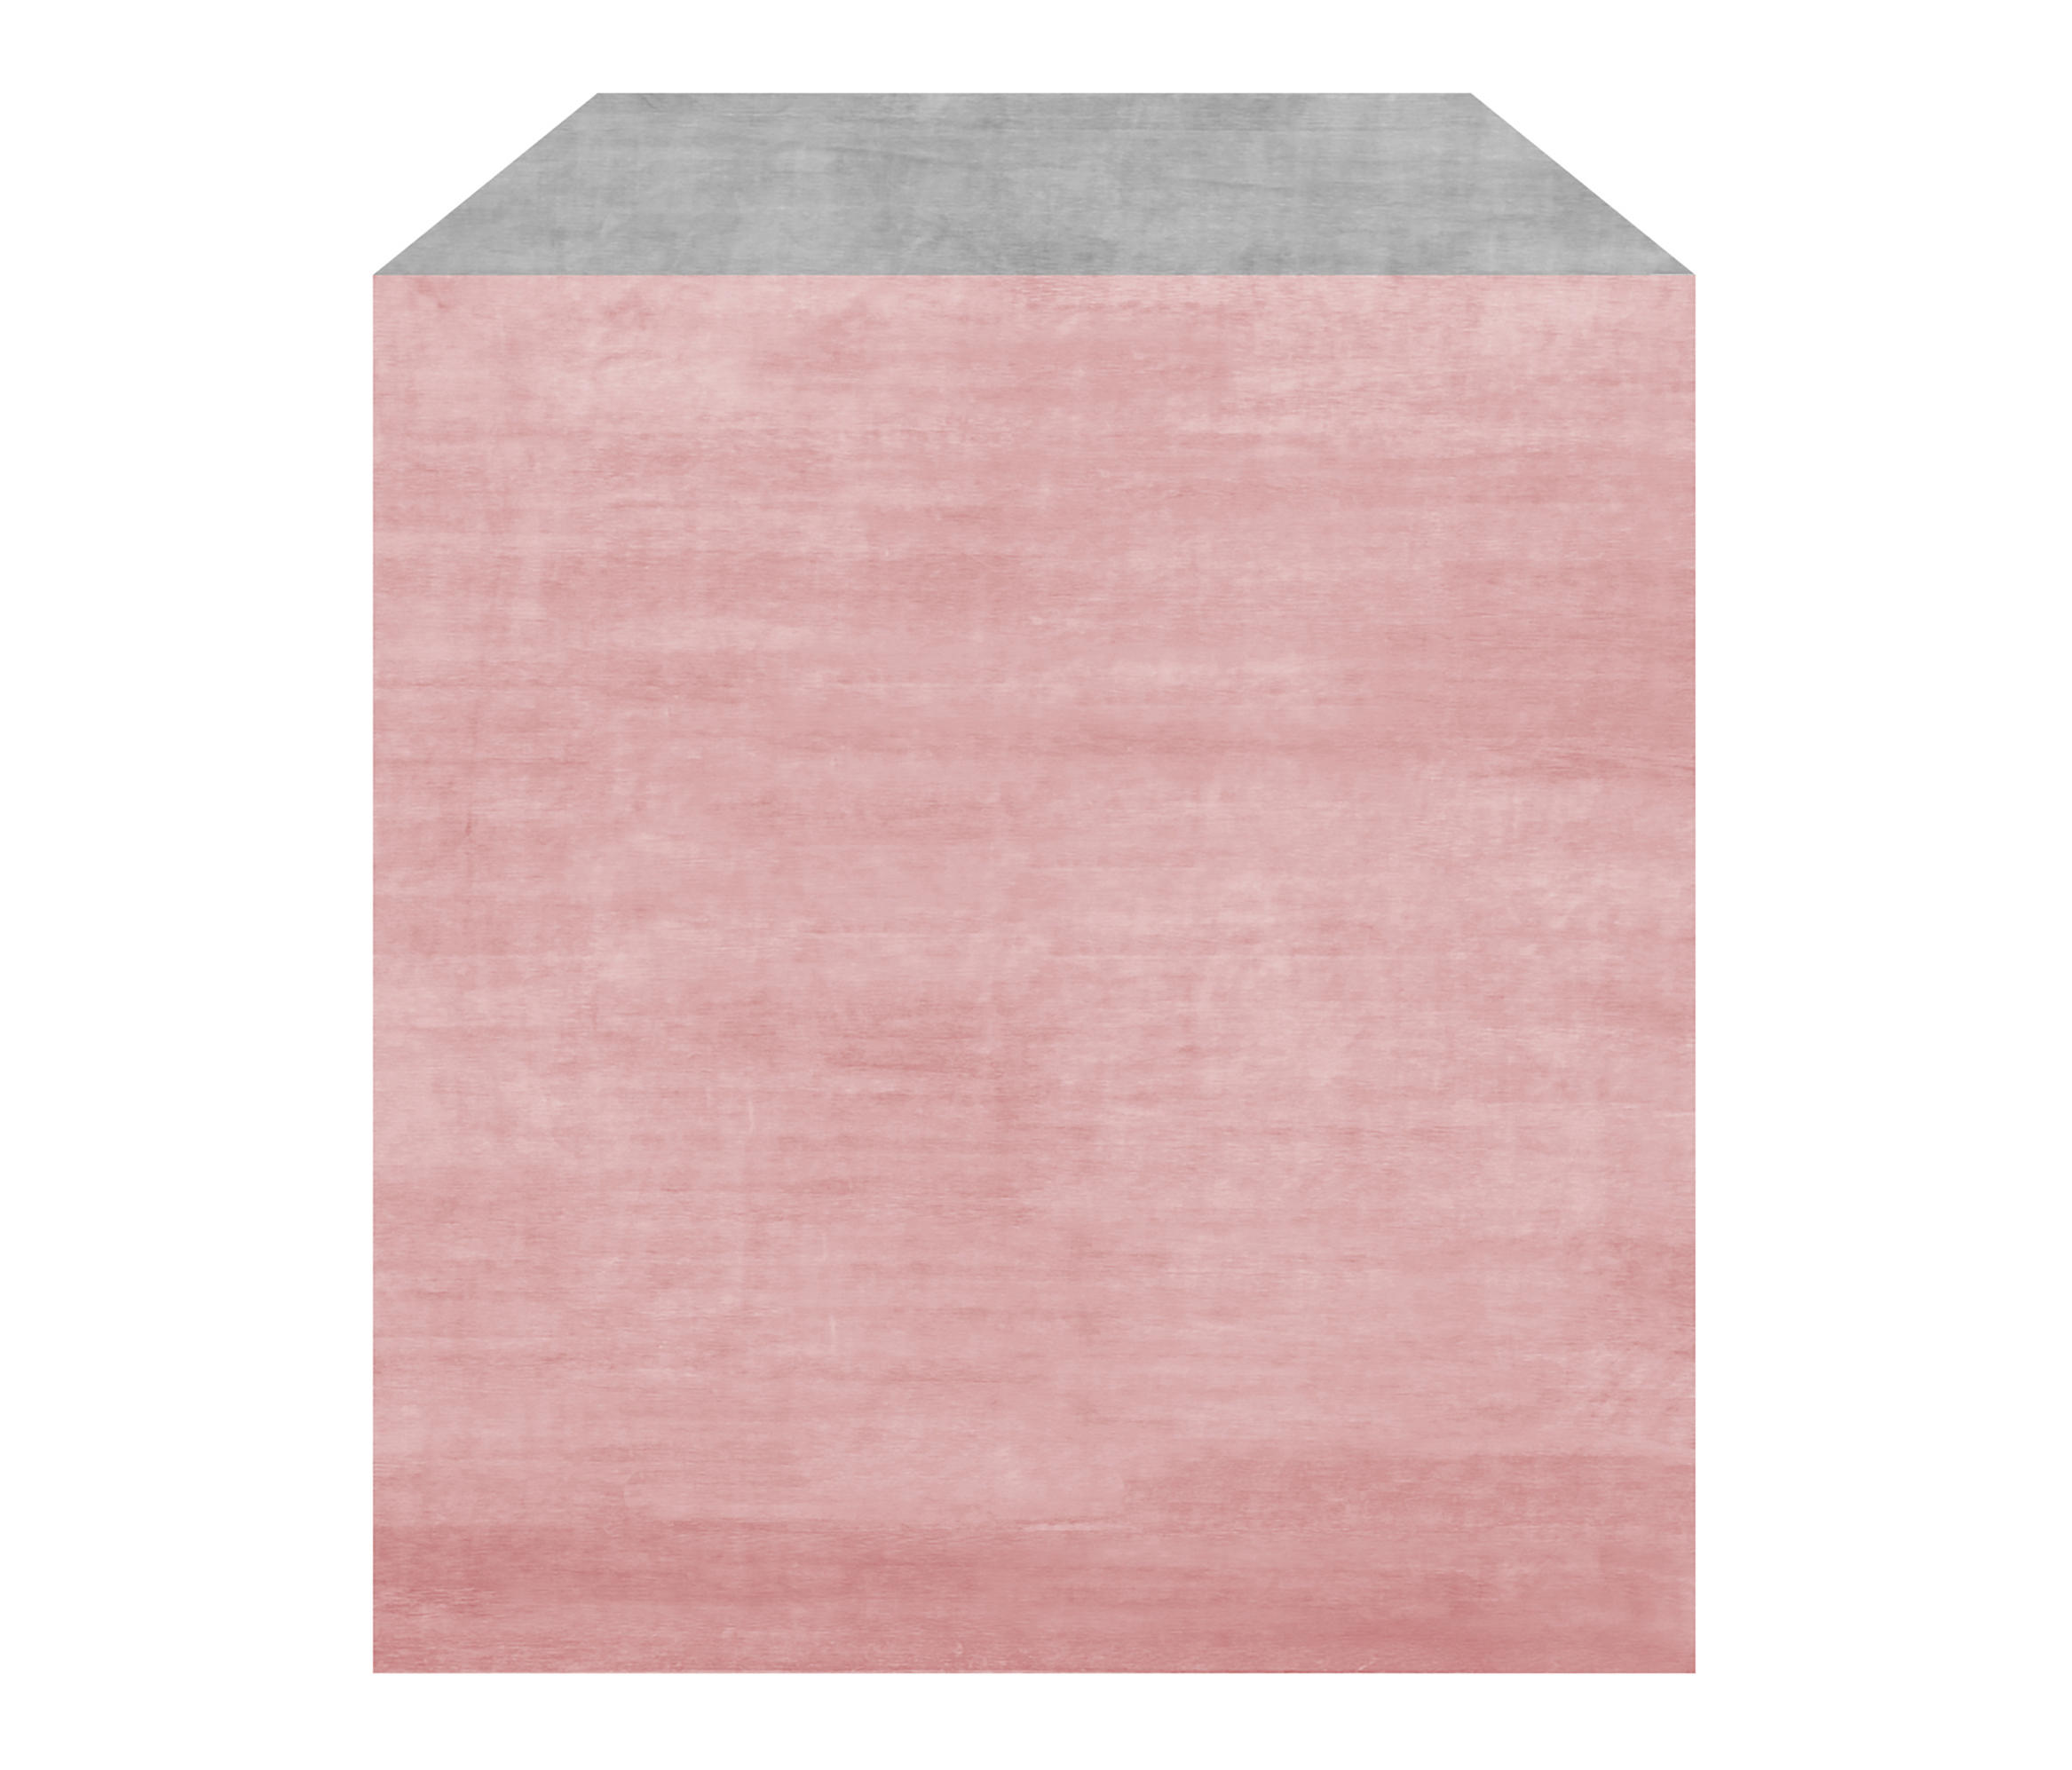 POSTIANO PINK GRAPE - Rugs From Henzel Studio